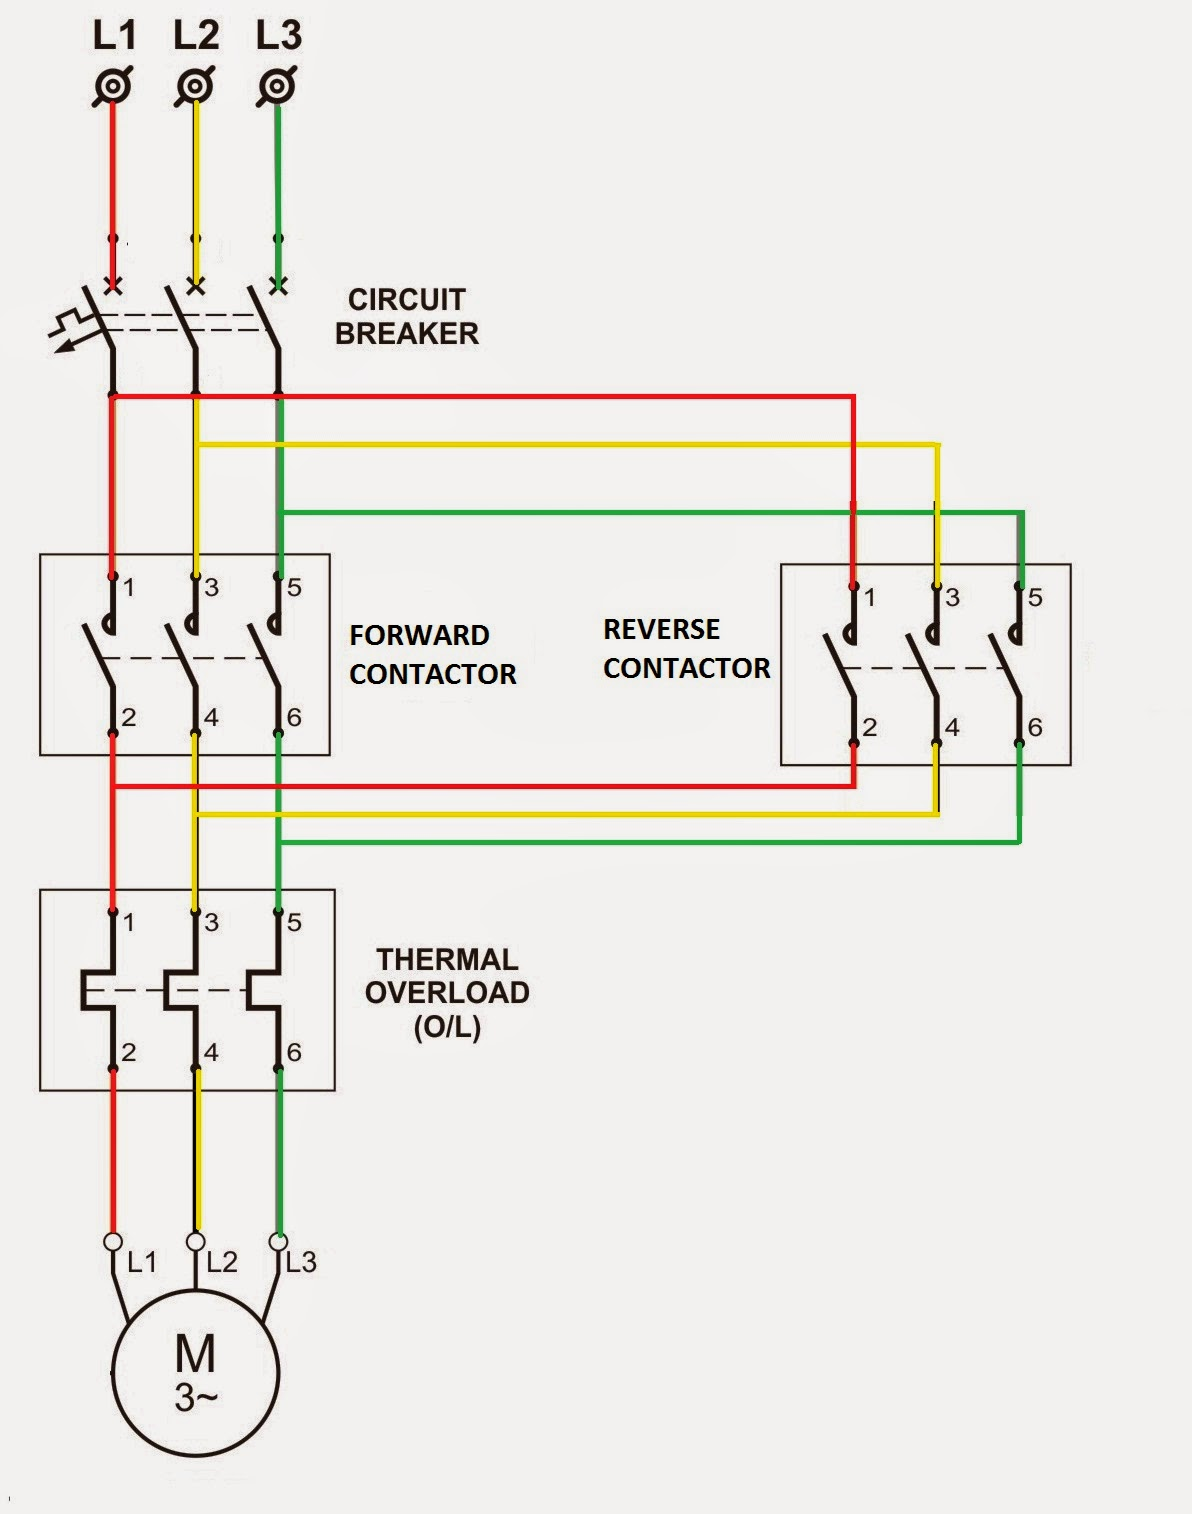 Electricity Refrigeration Heating Air Conditioning 5b besides Power Distribution Configurations With Three Three Phase Hot Power Lines also 3 Phase Plug Wiring Diagram Nz also 400   Three Phase Wiring Diagram additionally Portable Mobile Substations. on 208 three phase power wiring